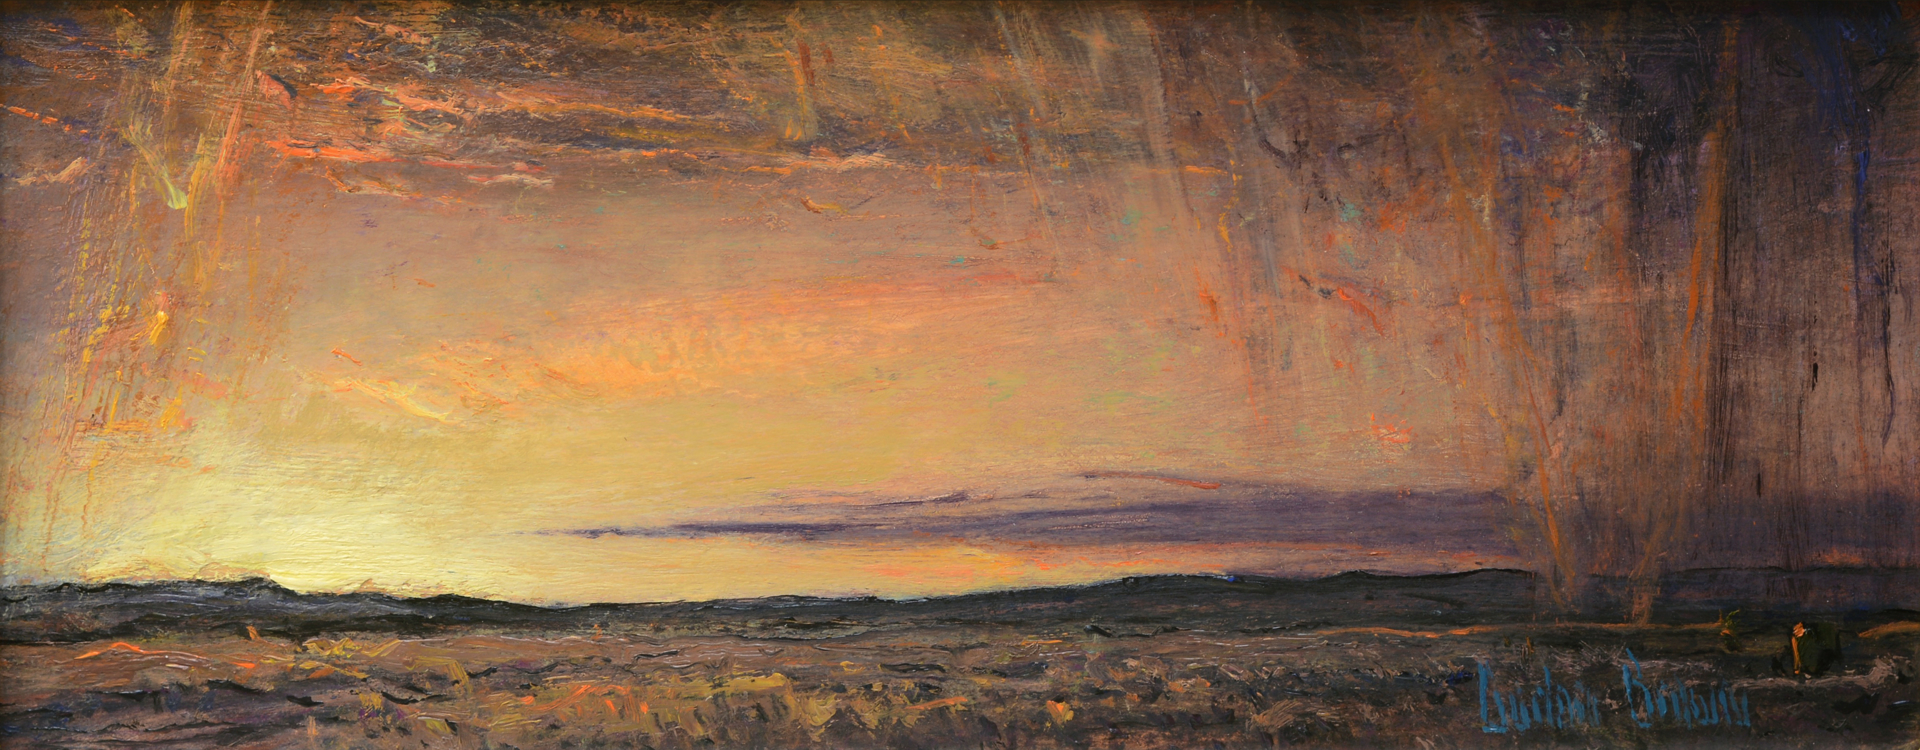 Sunset by Gordon Brown